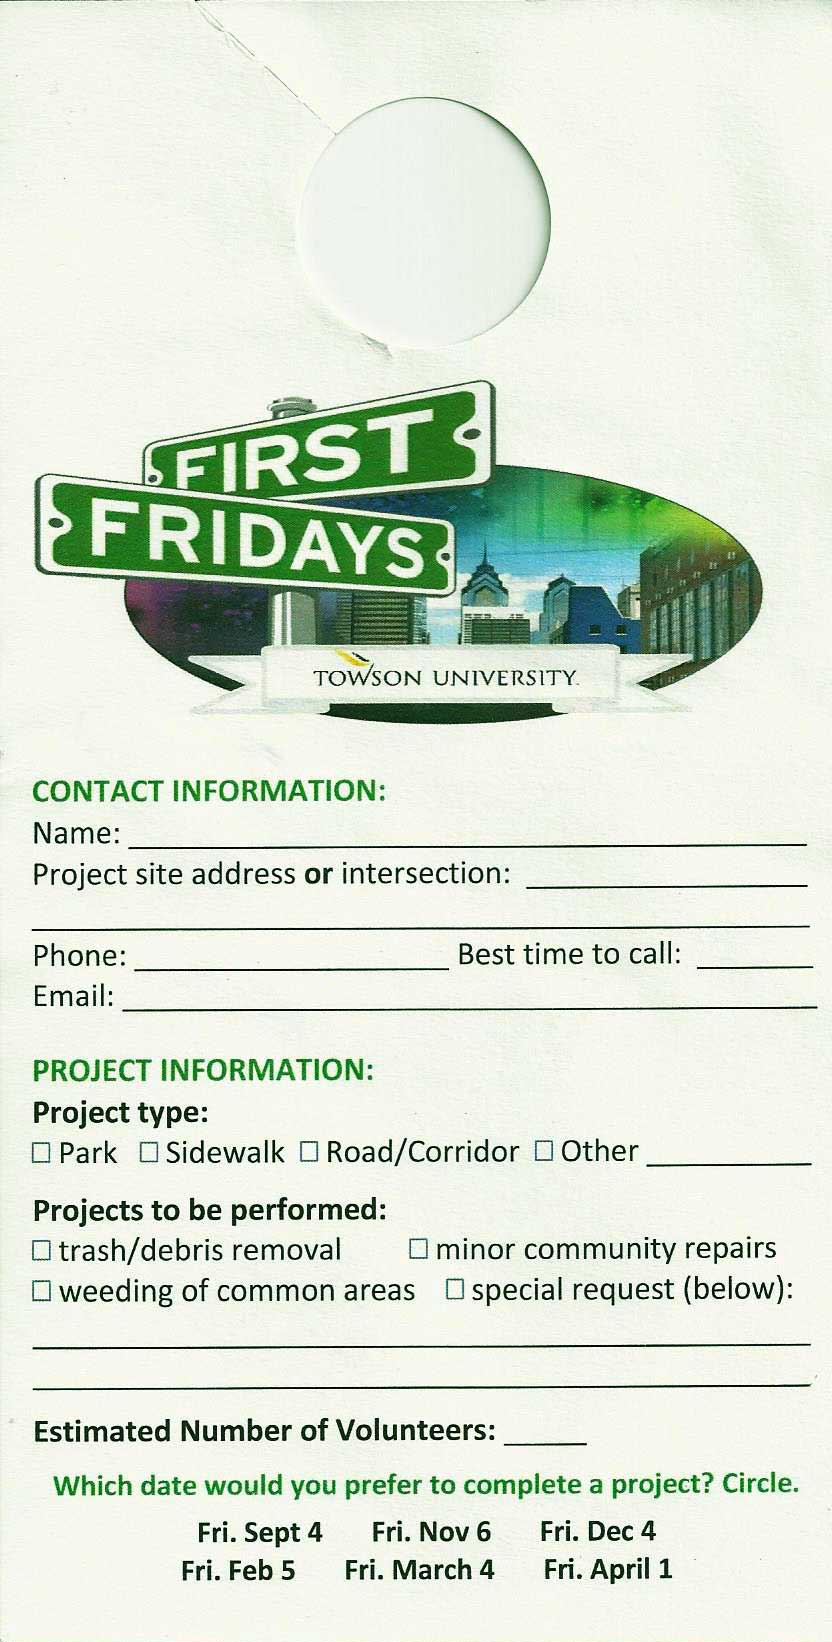 Towson University First Fridays in the Neighborhood